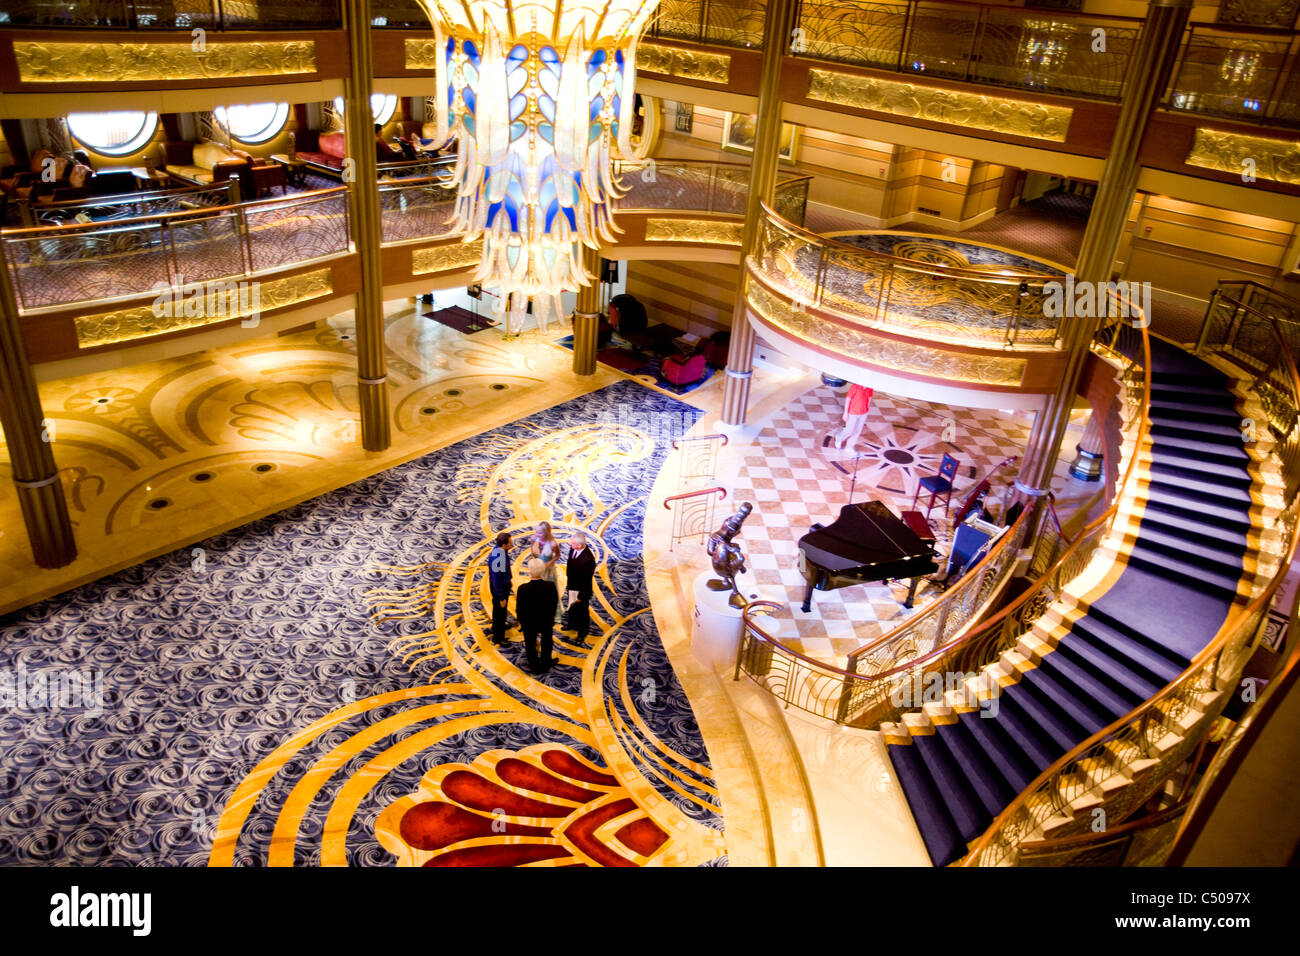 Atrium Lobby Disney Dream Cruise Line